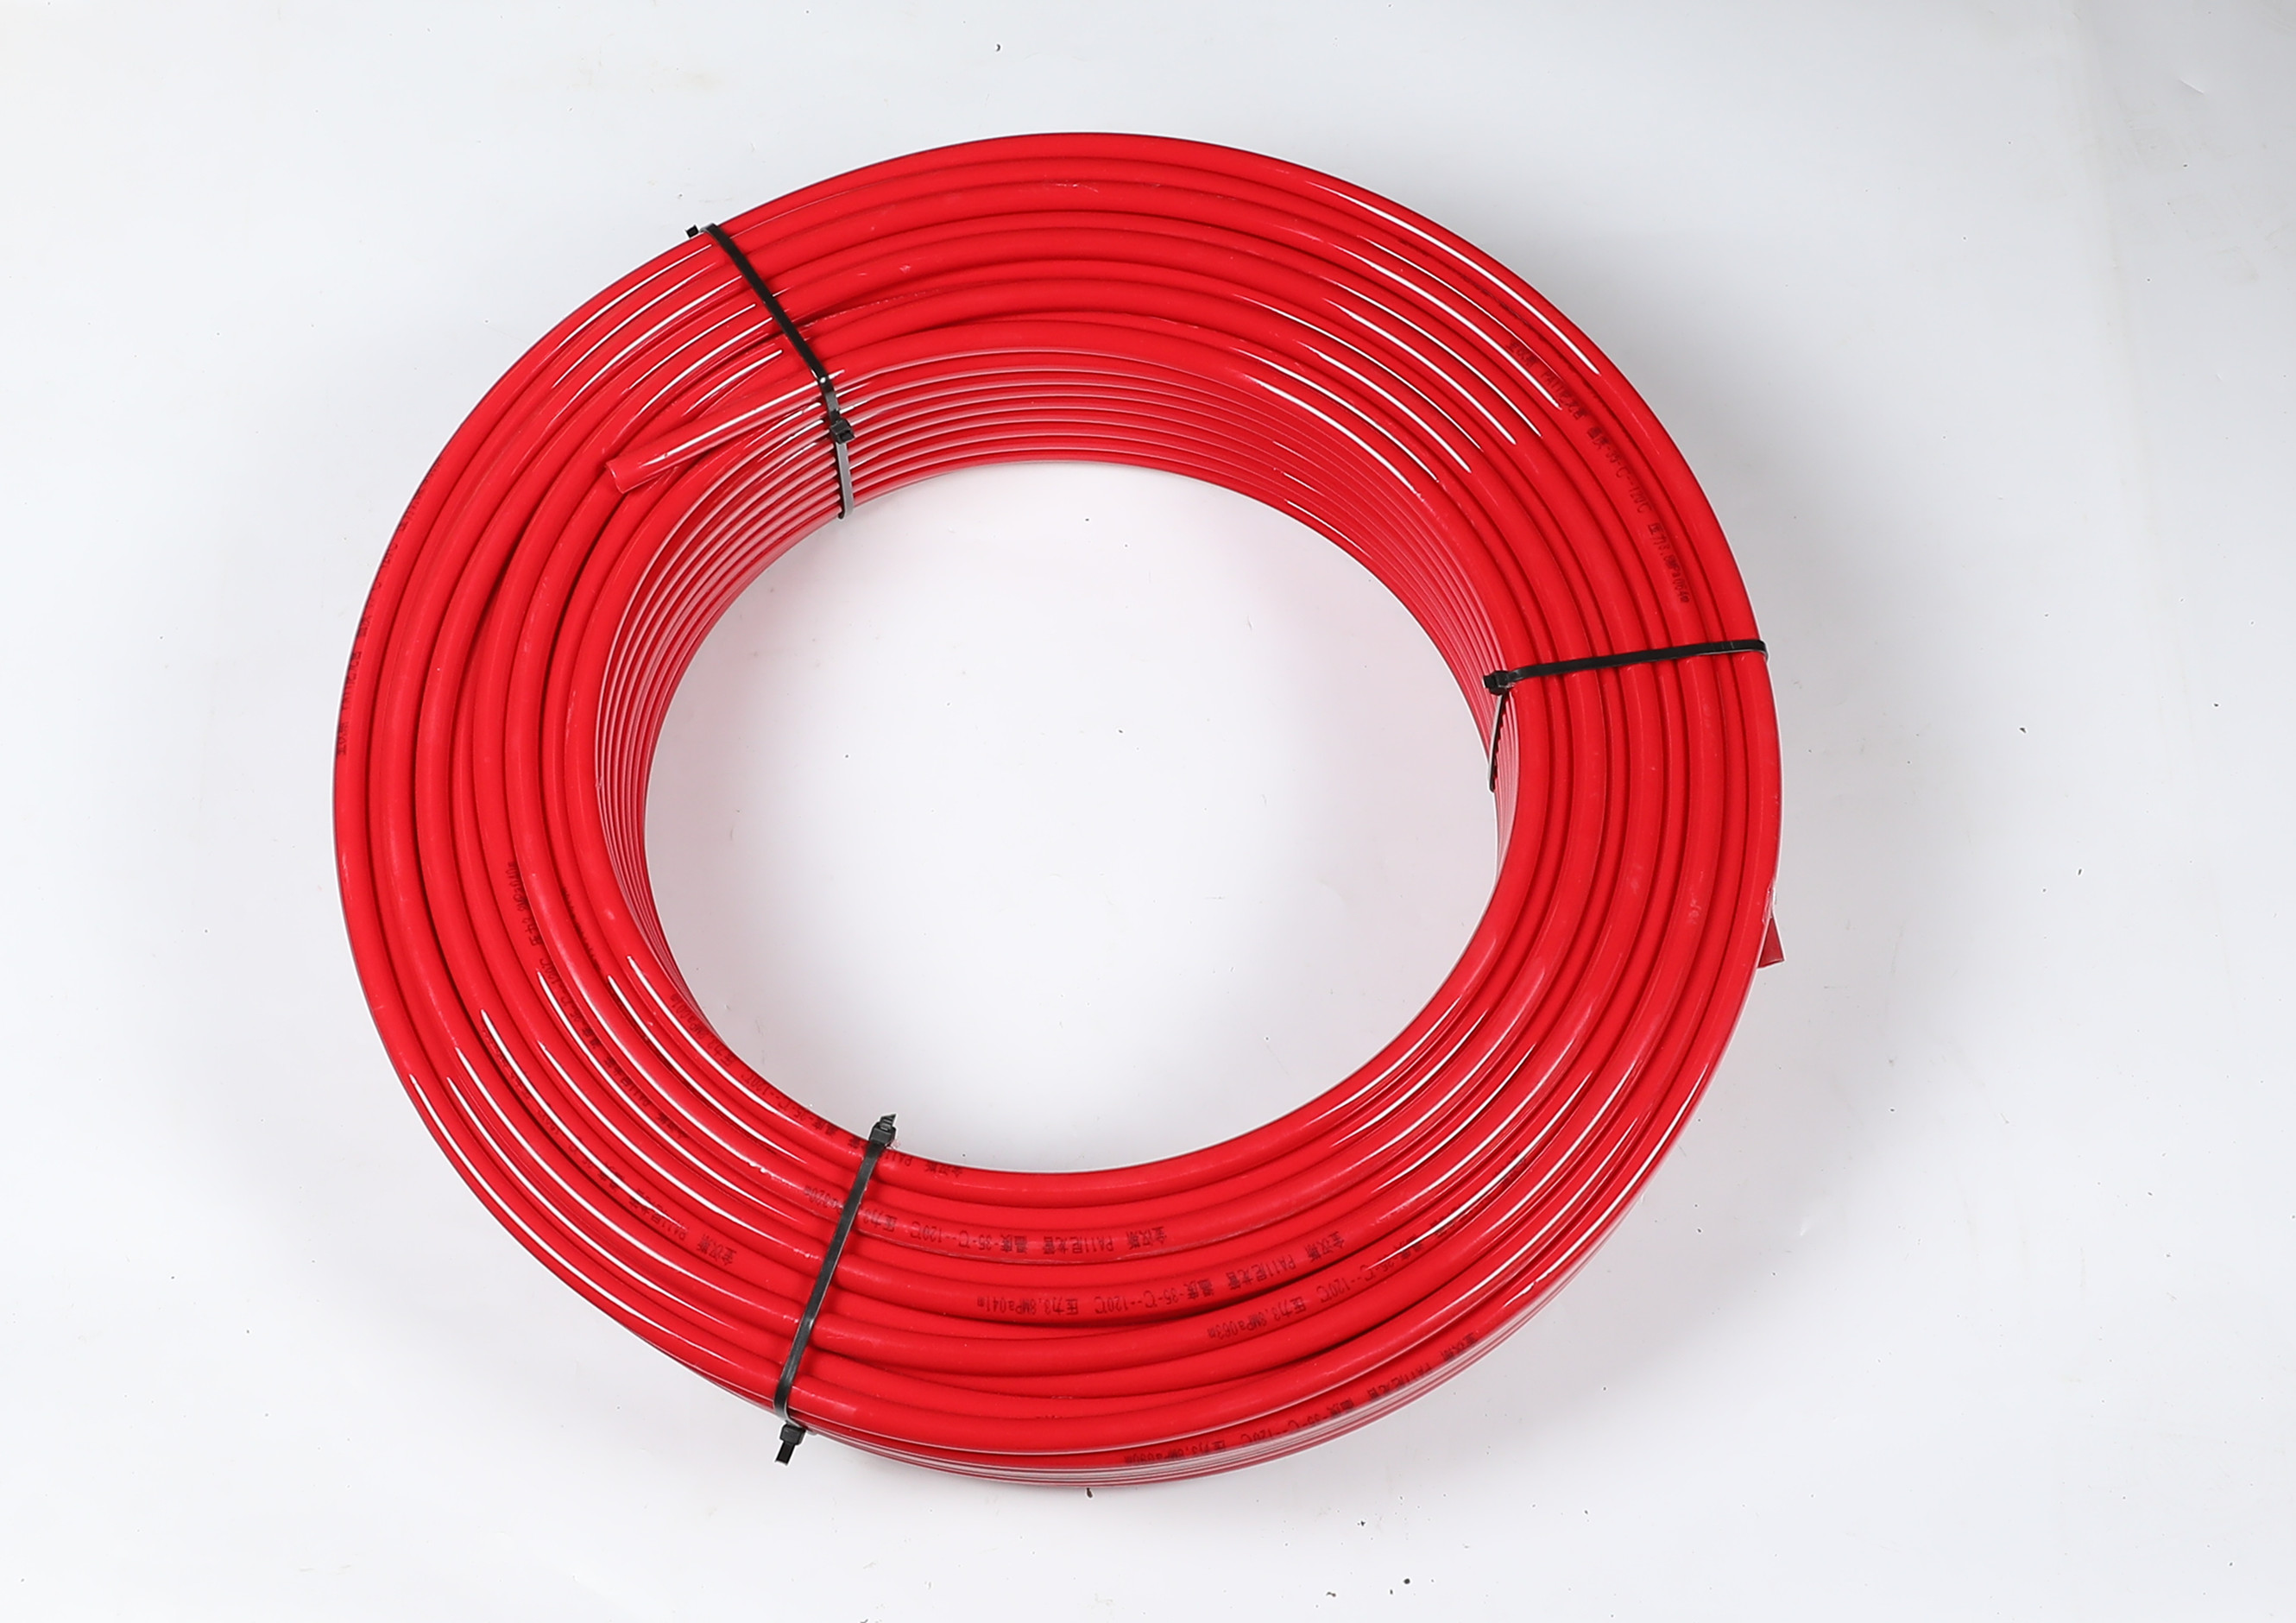 High quality trailer brake parts red air hose Coiled Air Lines